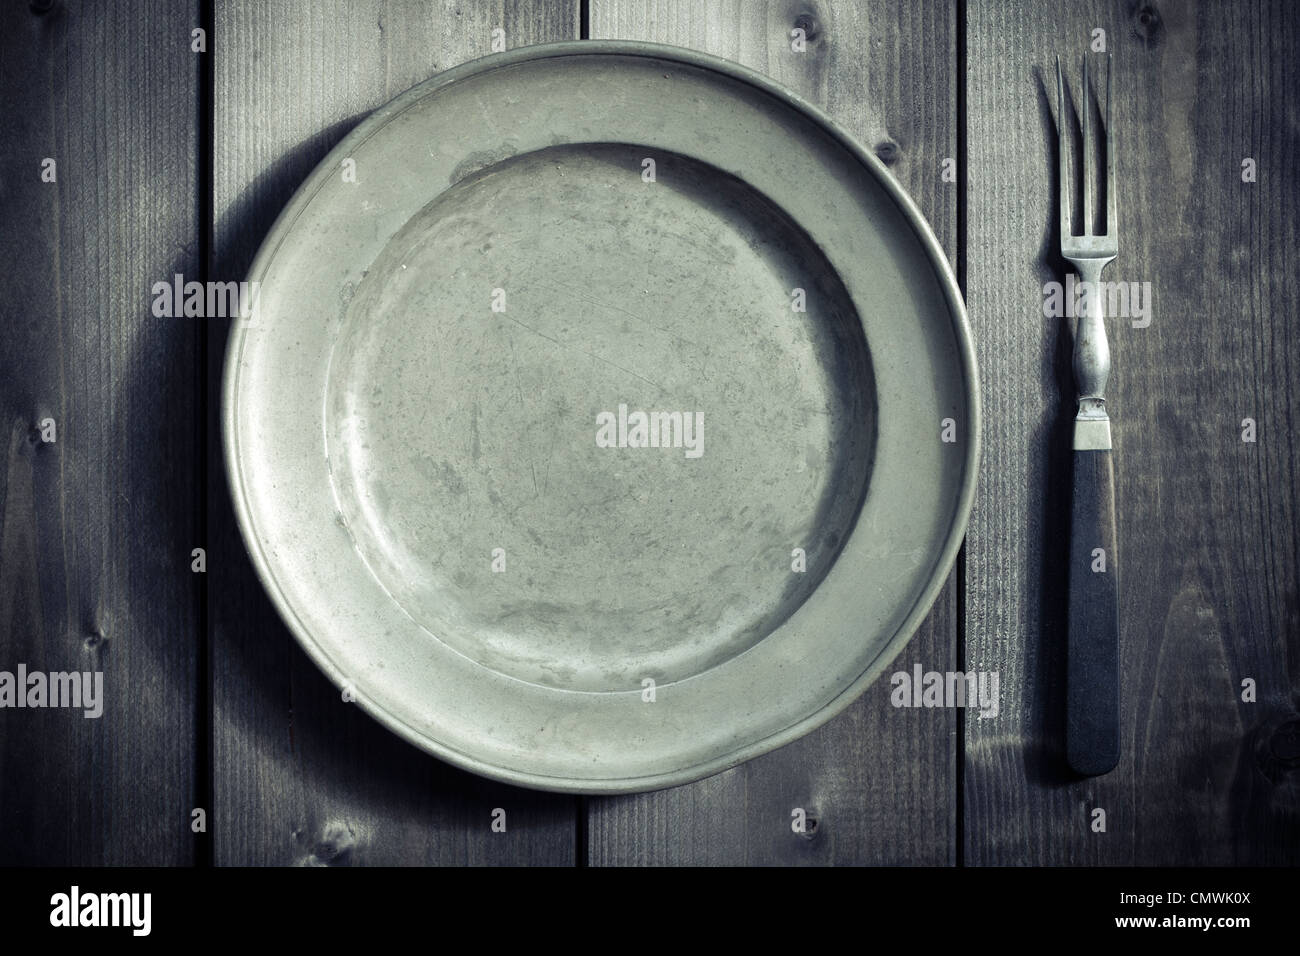 antique fork and plate on a wooden table - Stock Image